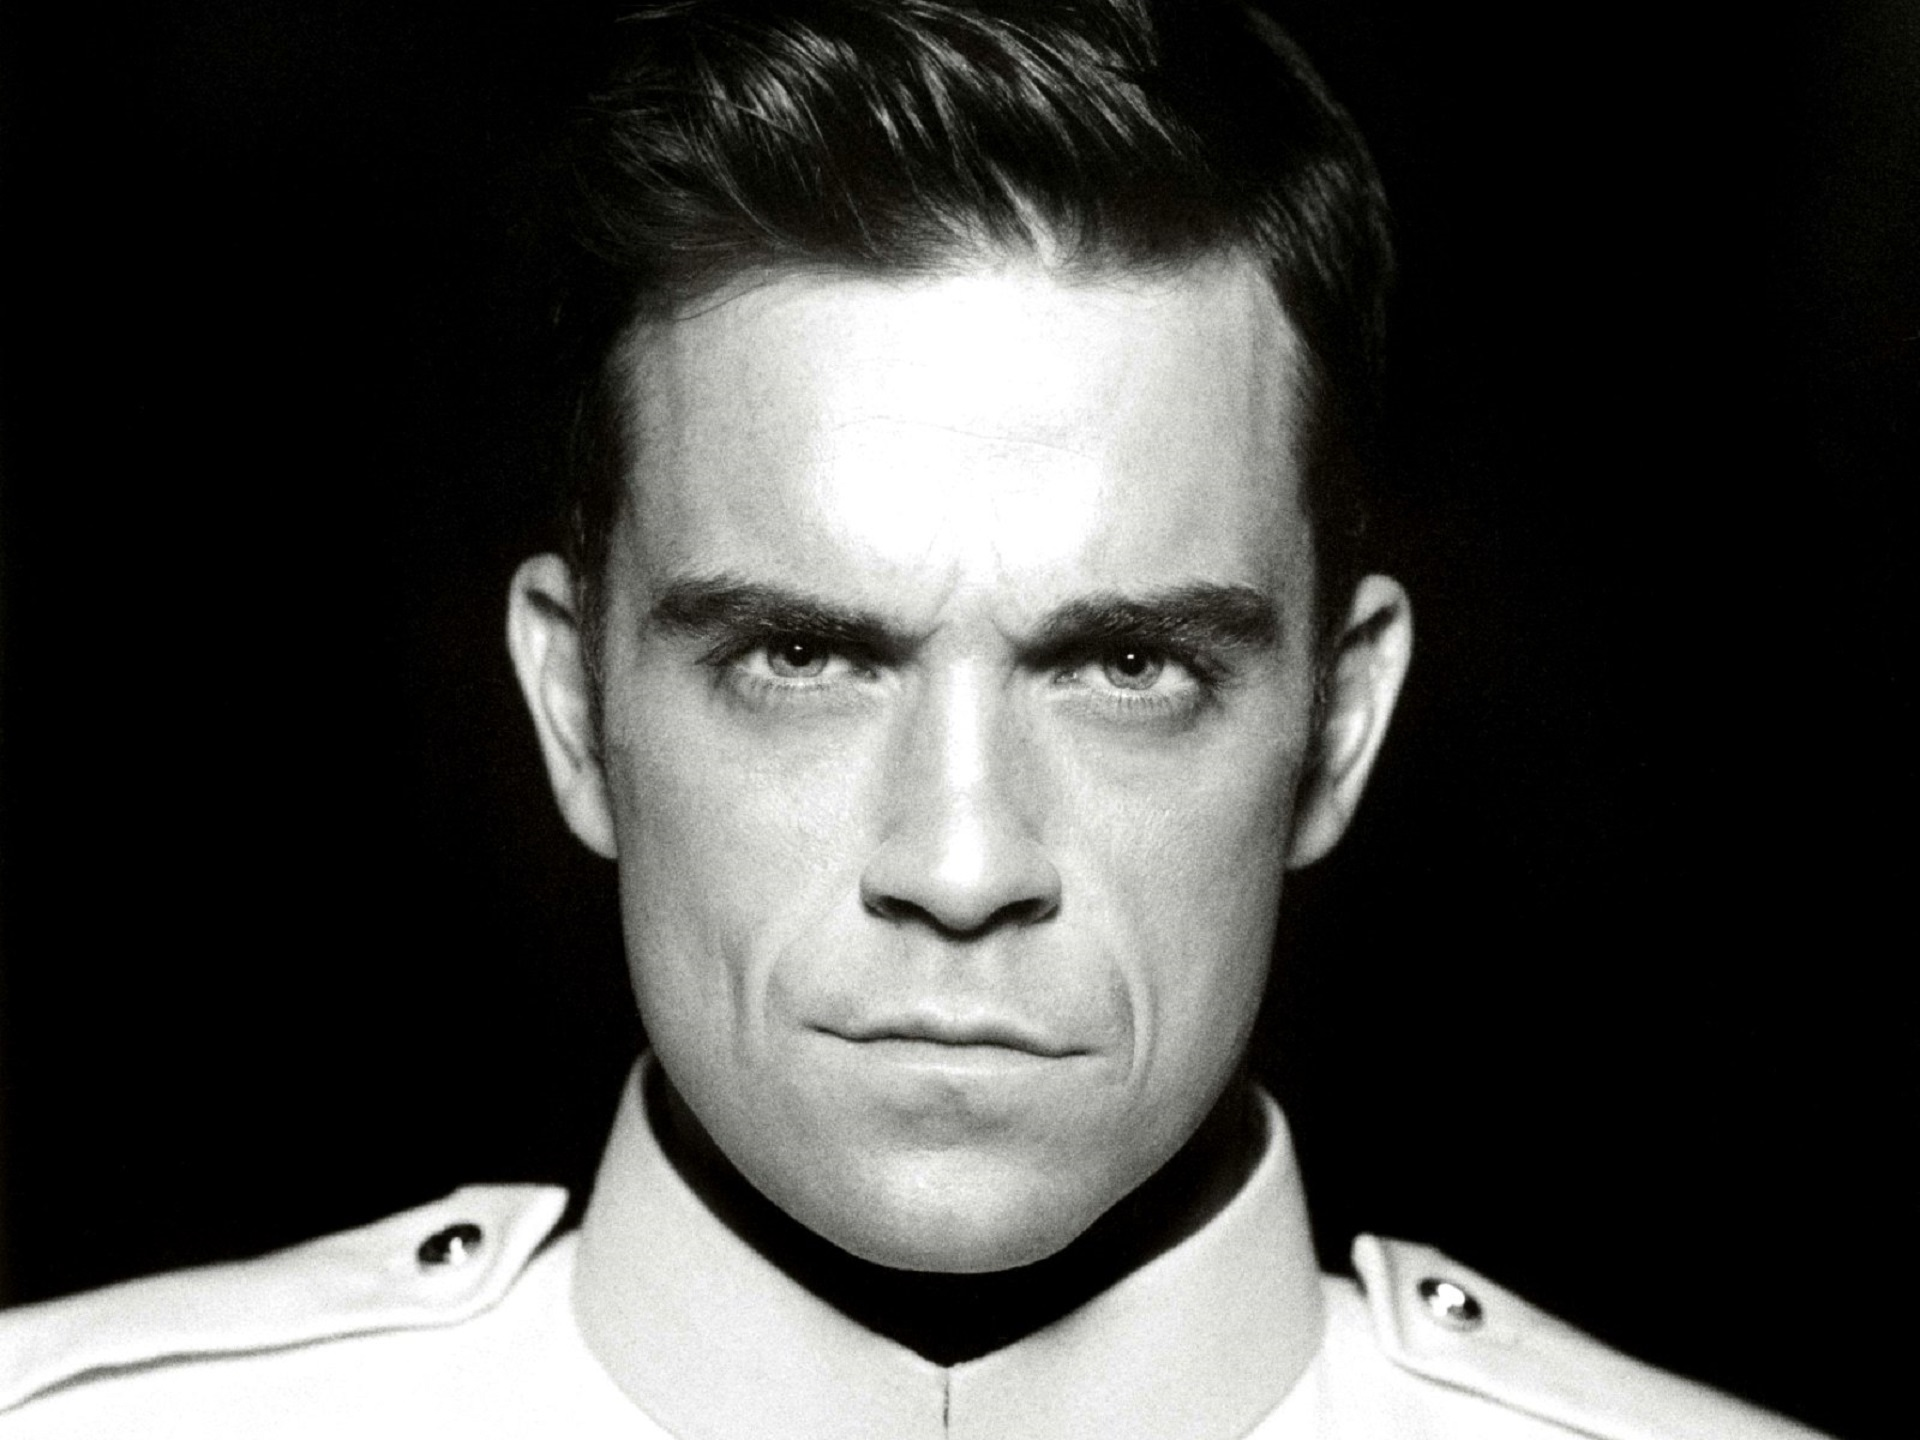 Robbie Williams Wallpaper 1920x1440